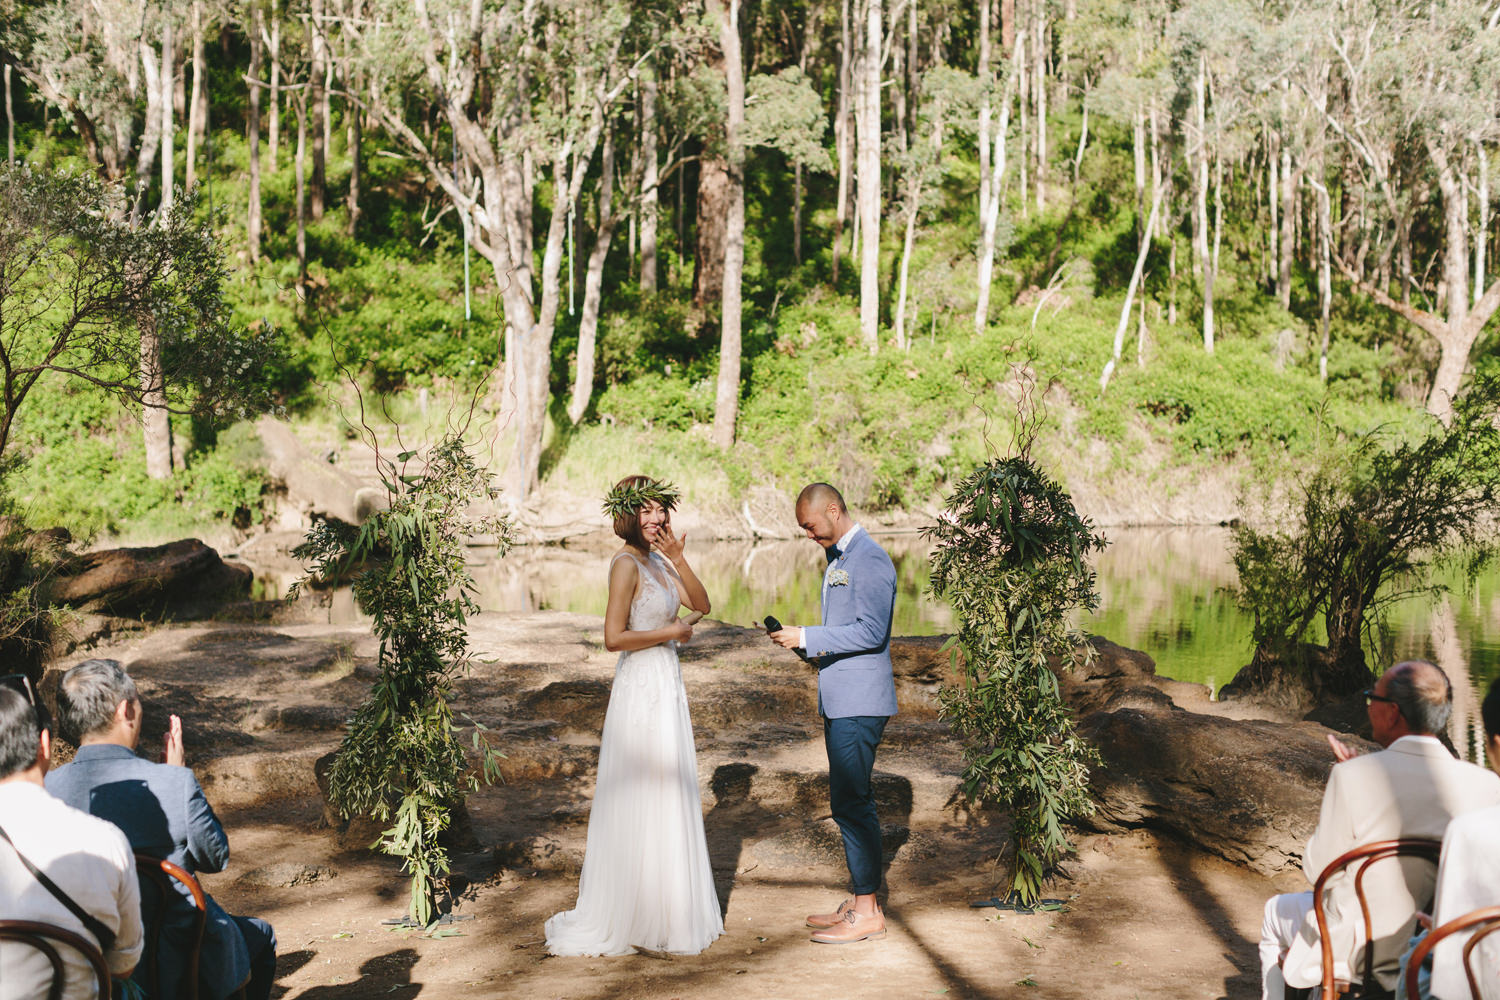 106-Barn_Wedding_Australia_Sam_Ting.jpg